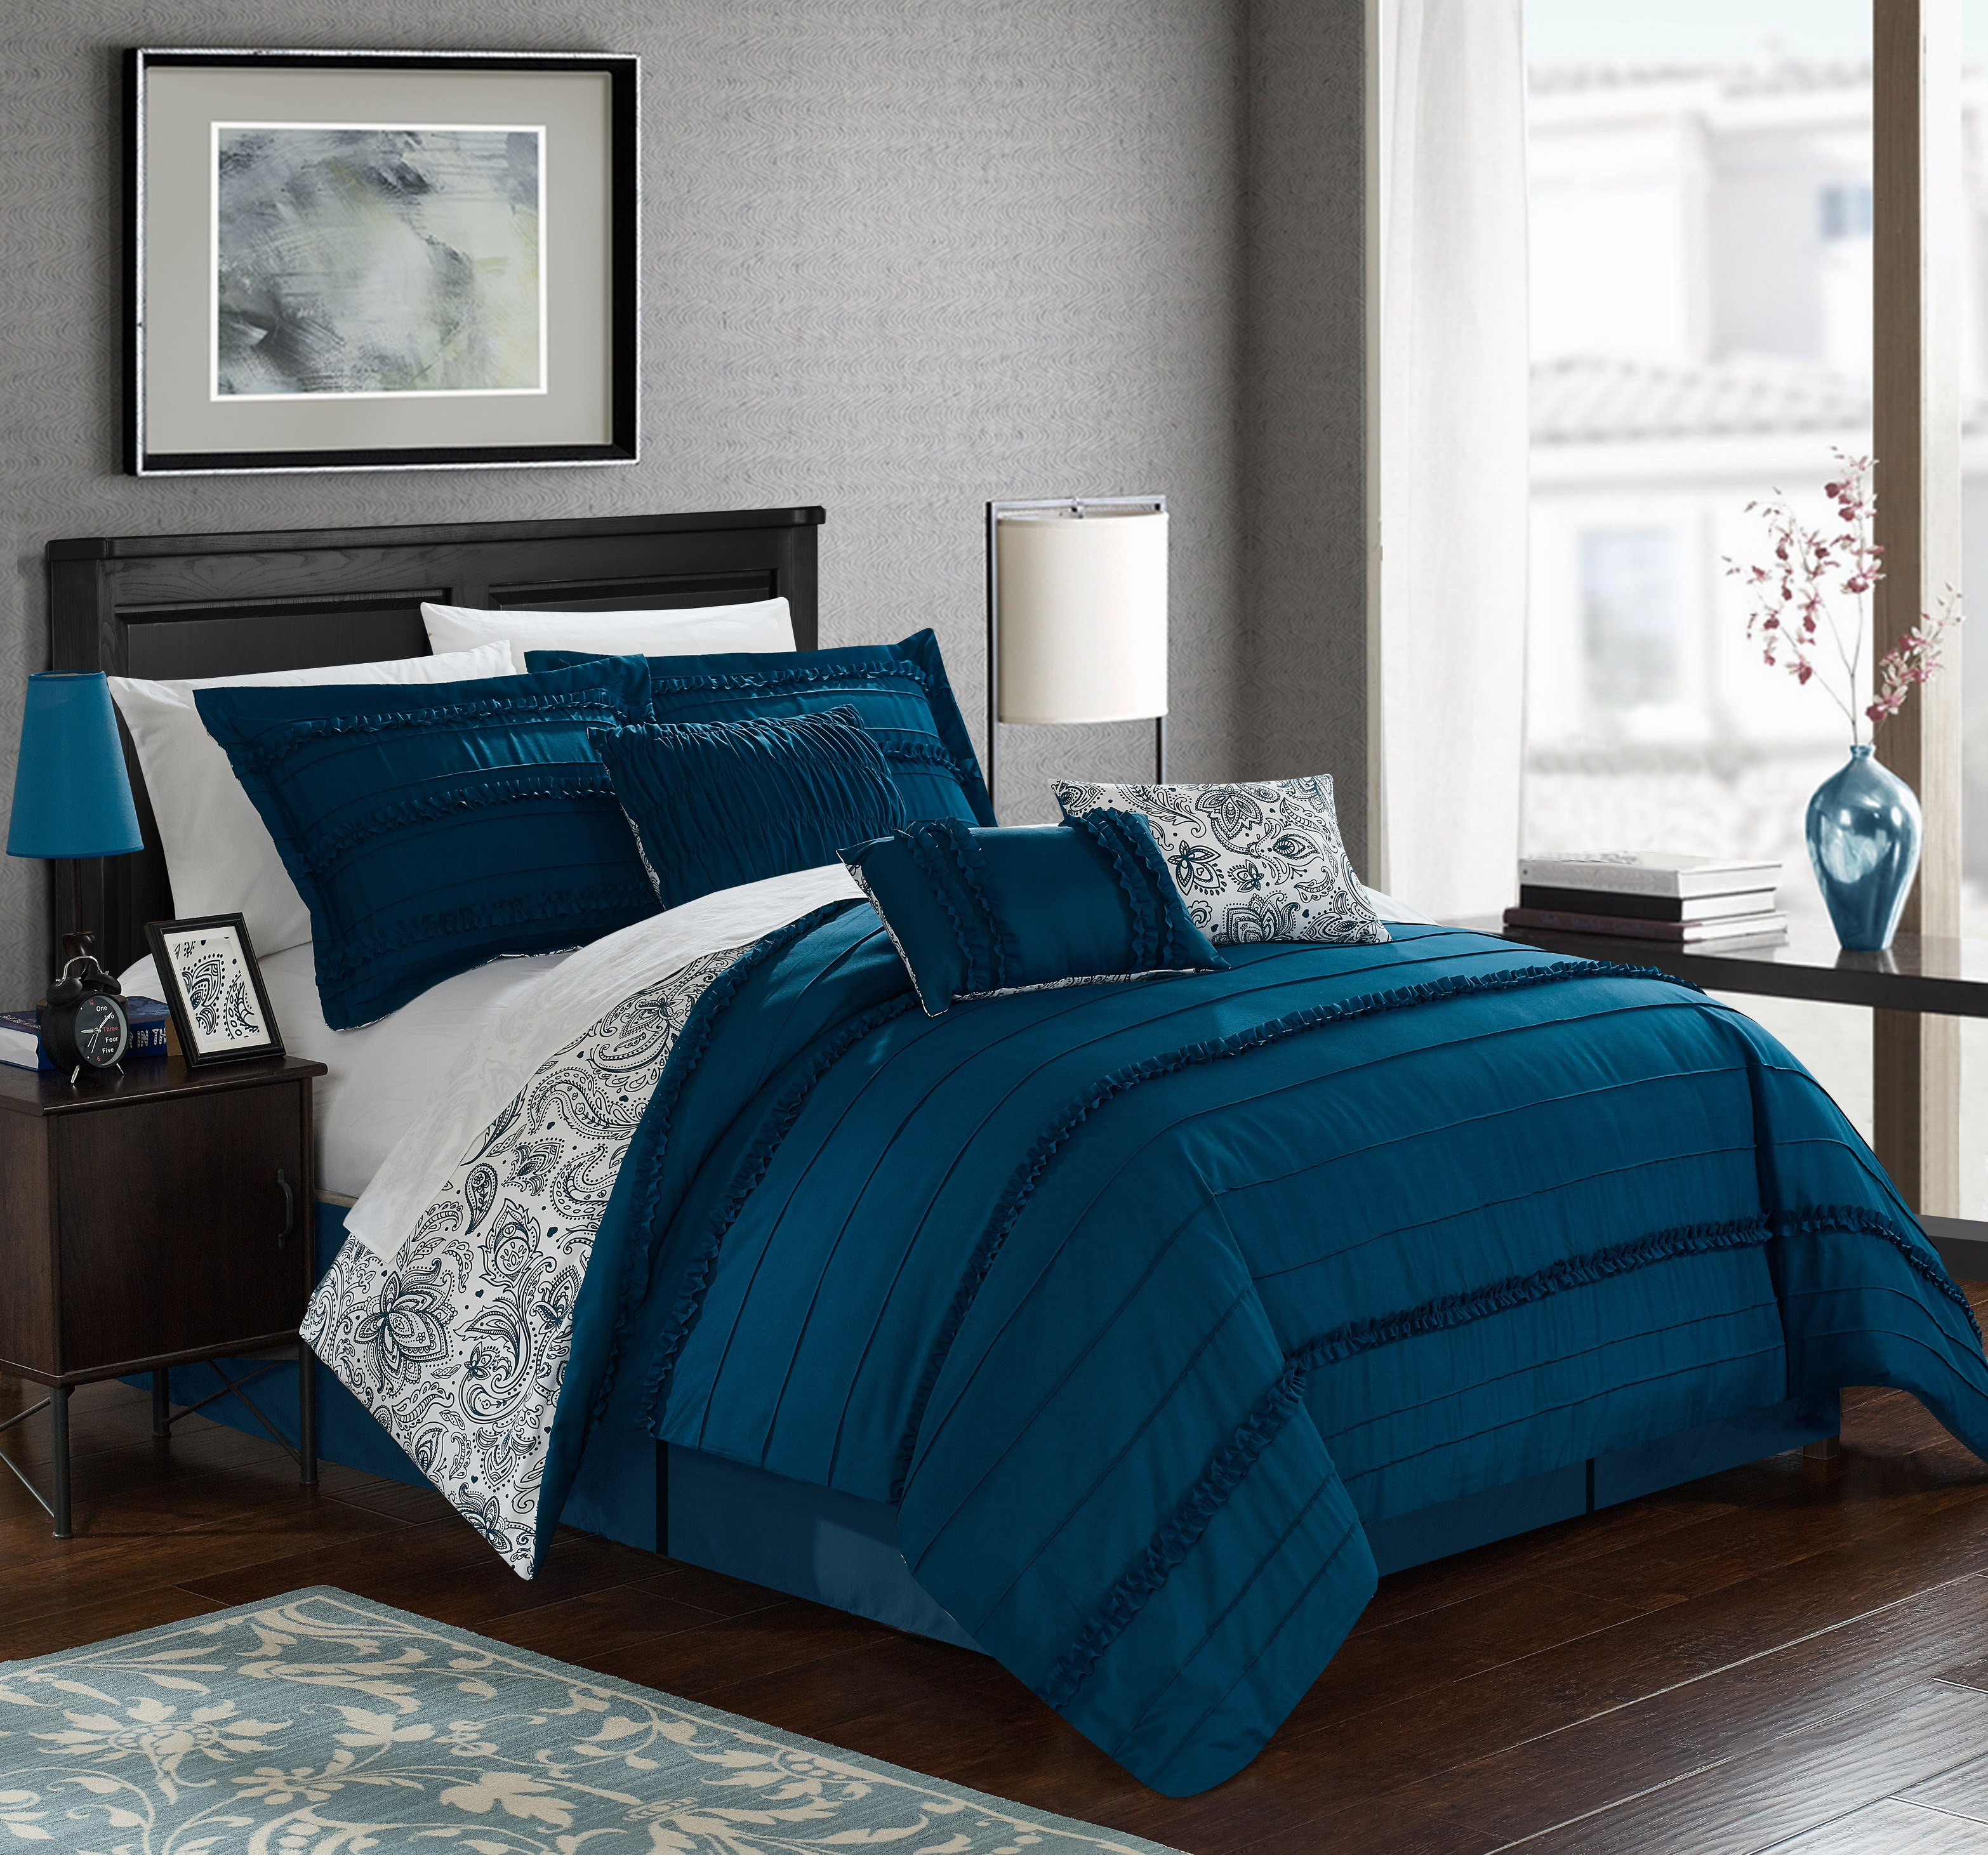 Chic Home 7-Piece Maeve Pleated and Ruffled REVERSIBLE Paisley Floral Print King Comforter Set Navy Shams and Decorative Pillows included